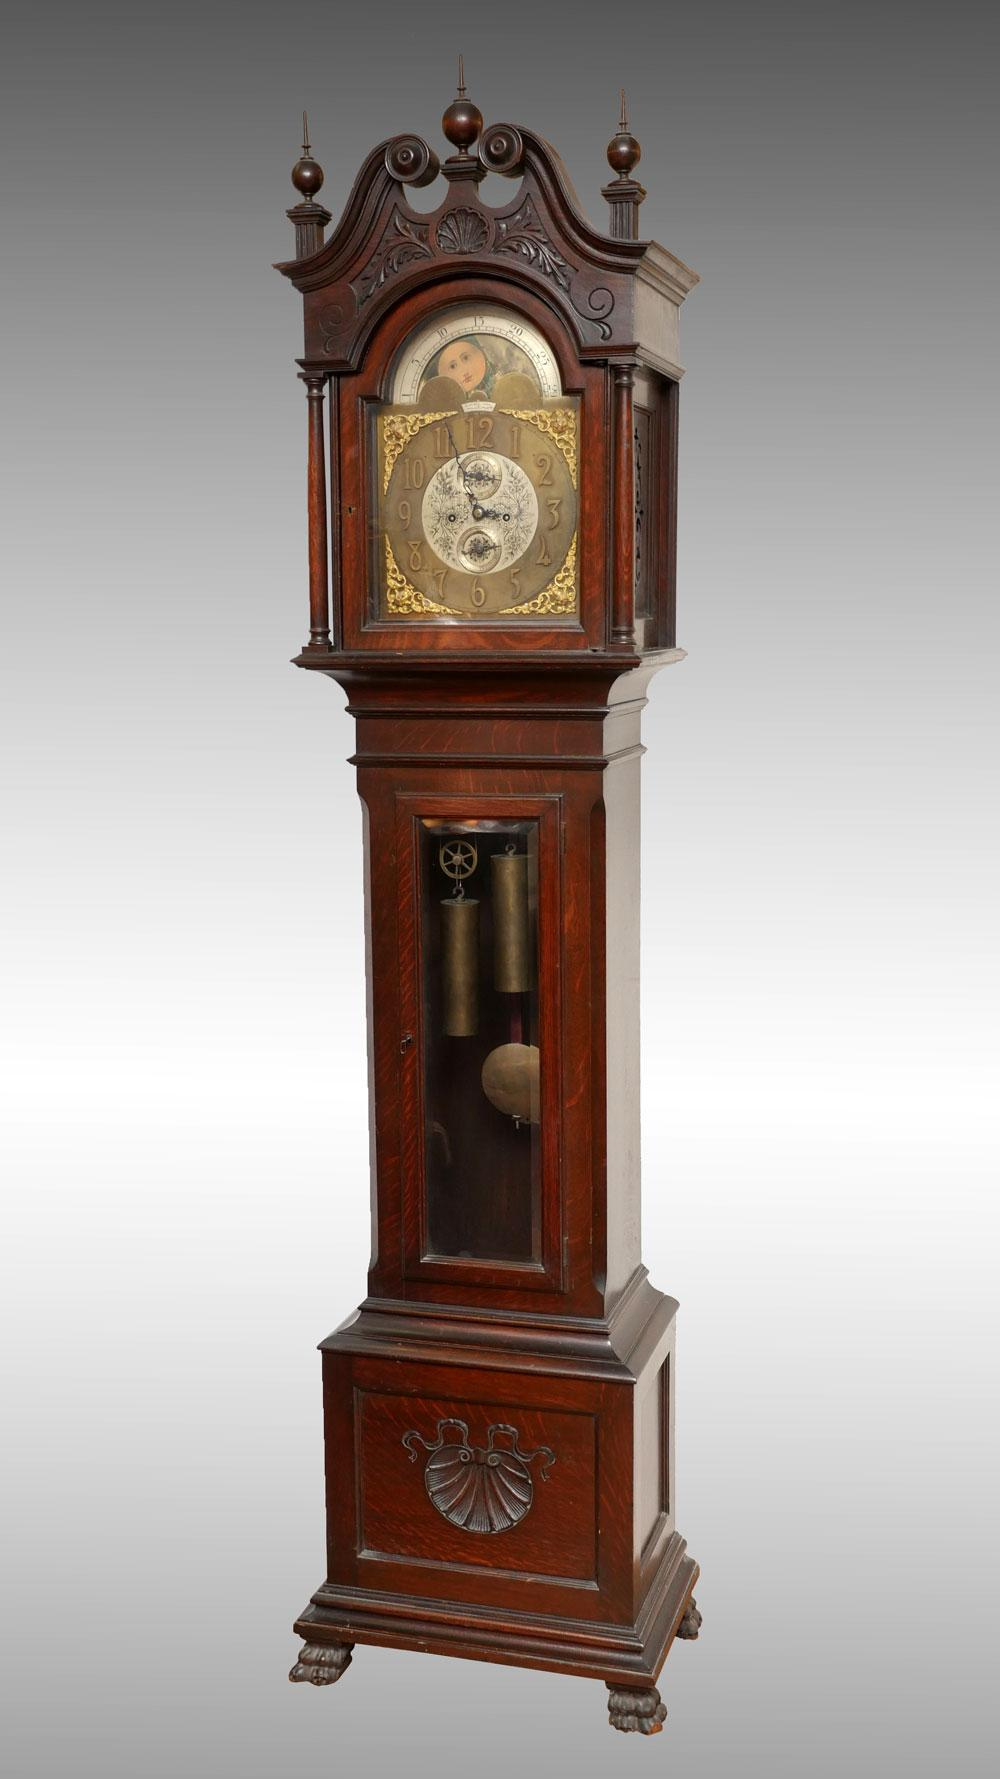 H. MUHR'S SONS GRANDFATHER CLOCK